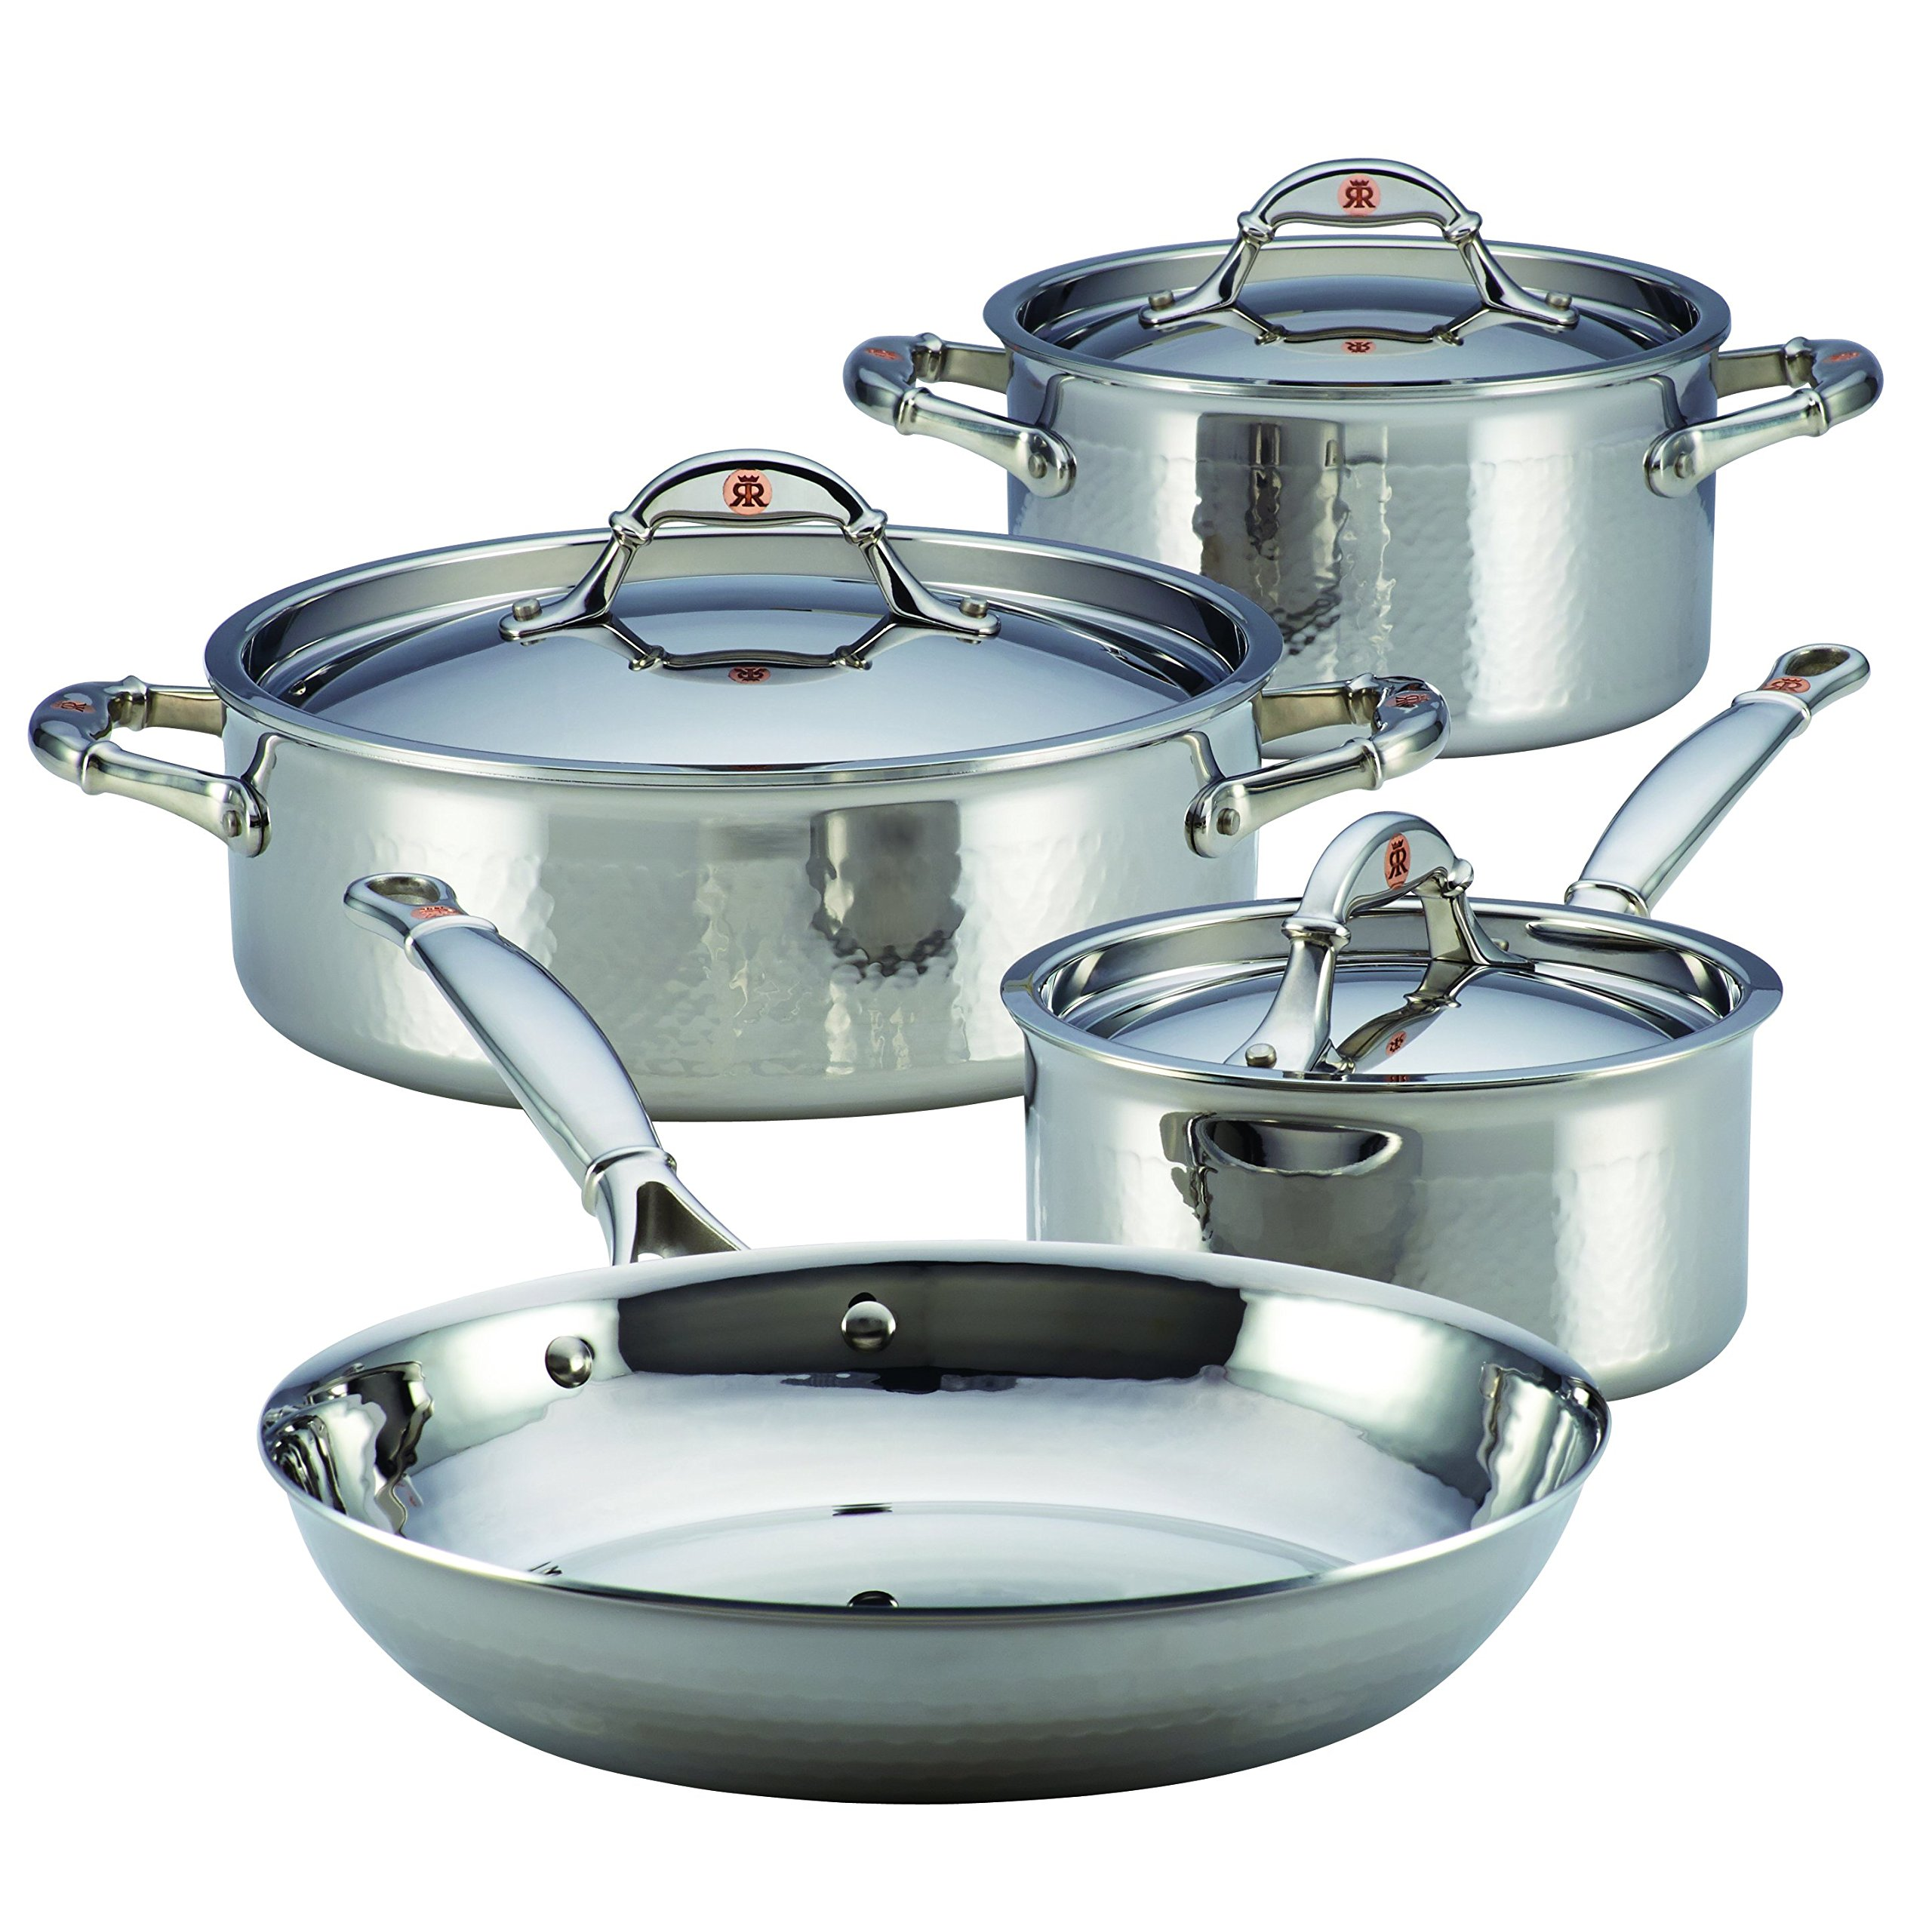 Ruffoni Symphonia Prima 7-Piece Cookware Set, Stainless Steel